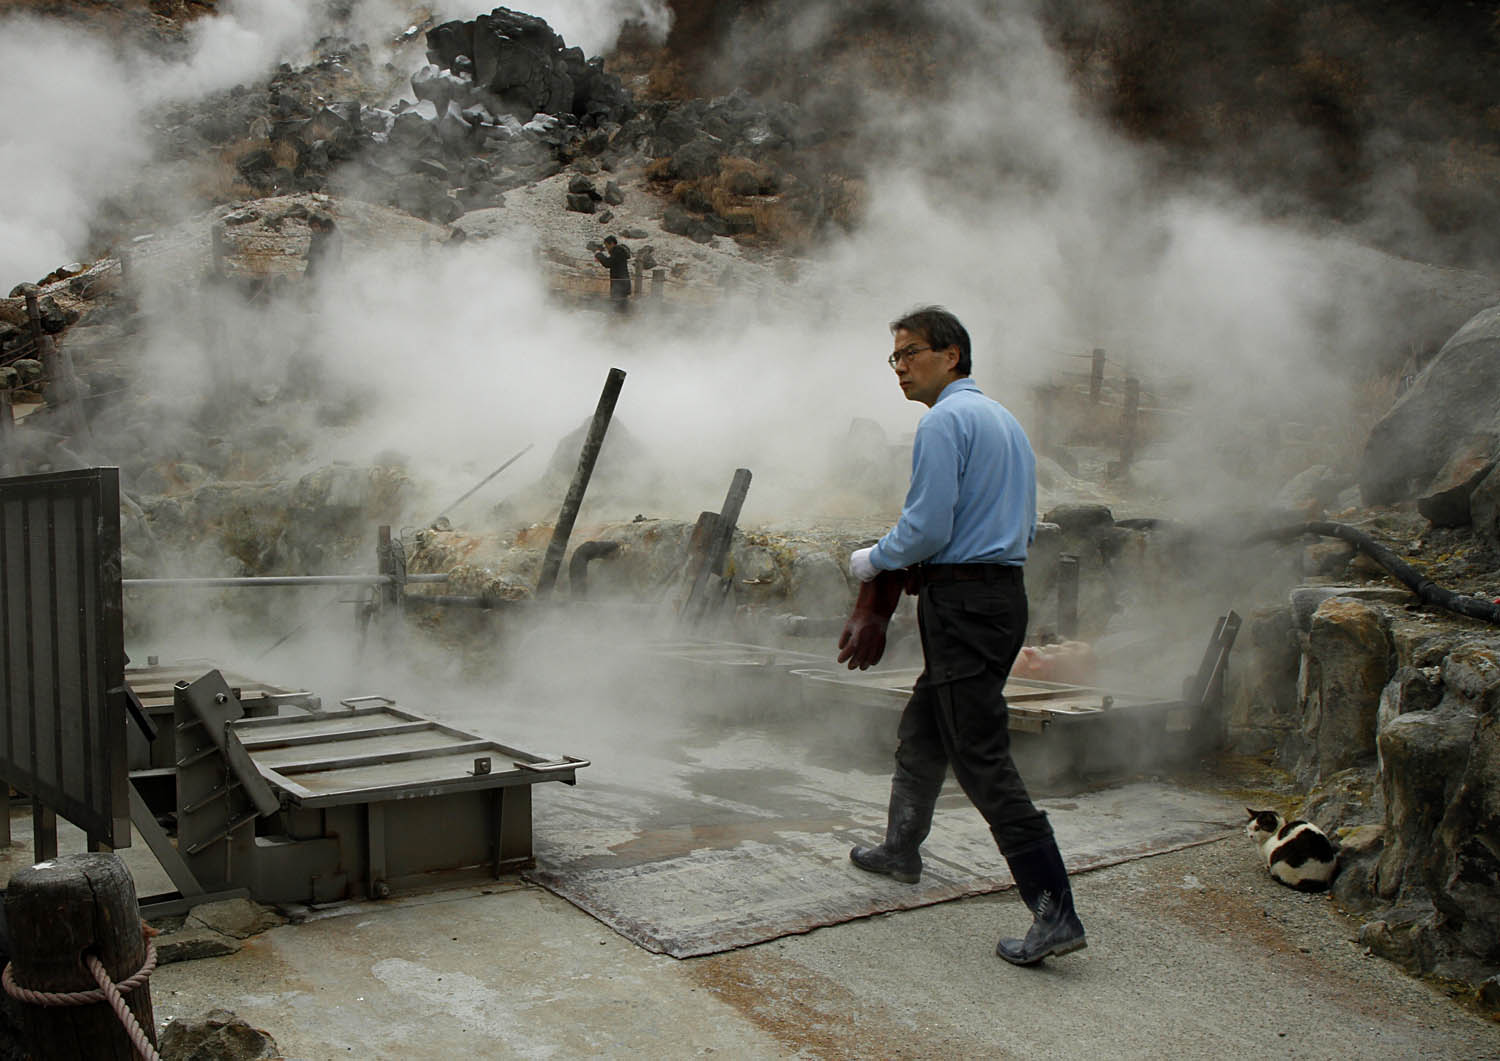 Steam surrounds a worker in Hakone, Japan, as he prepares to extract 黒玉子, or black eggs, from the sulfurous water of a mountain hot spring. The eggs boiled in the water take on a black color from the sulfur. According to legend, eating one of these eggs adds five years to your life.